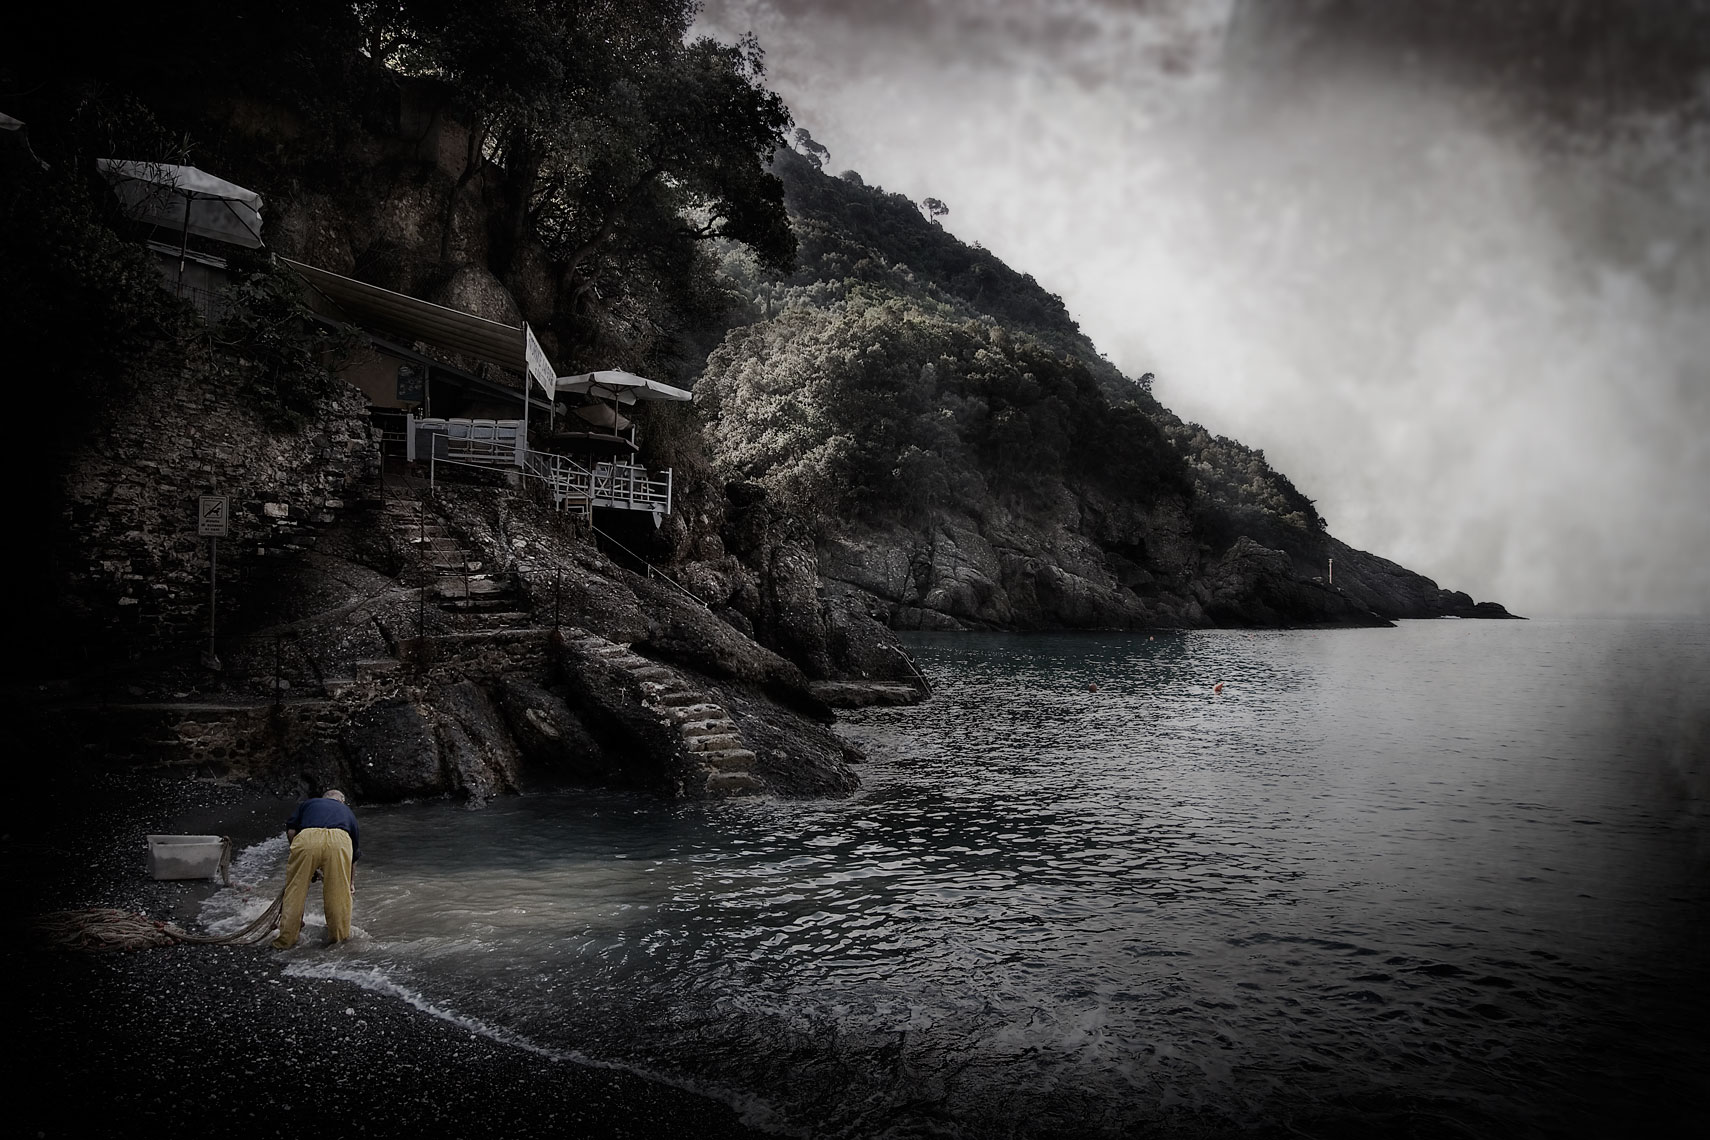 YellowFisherman_Wtexture